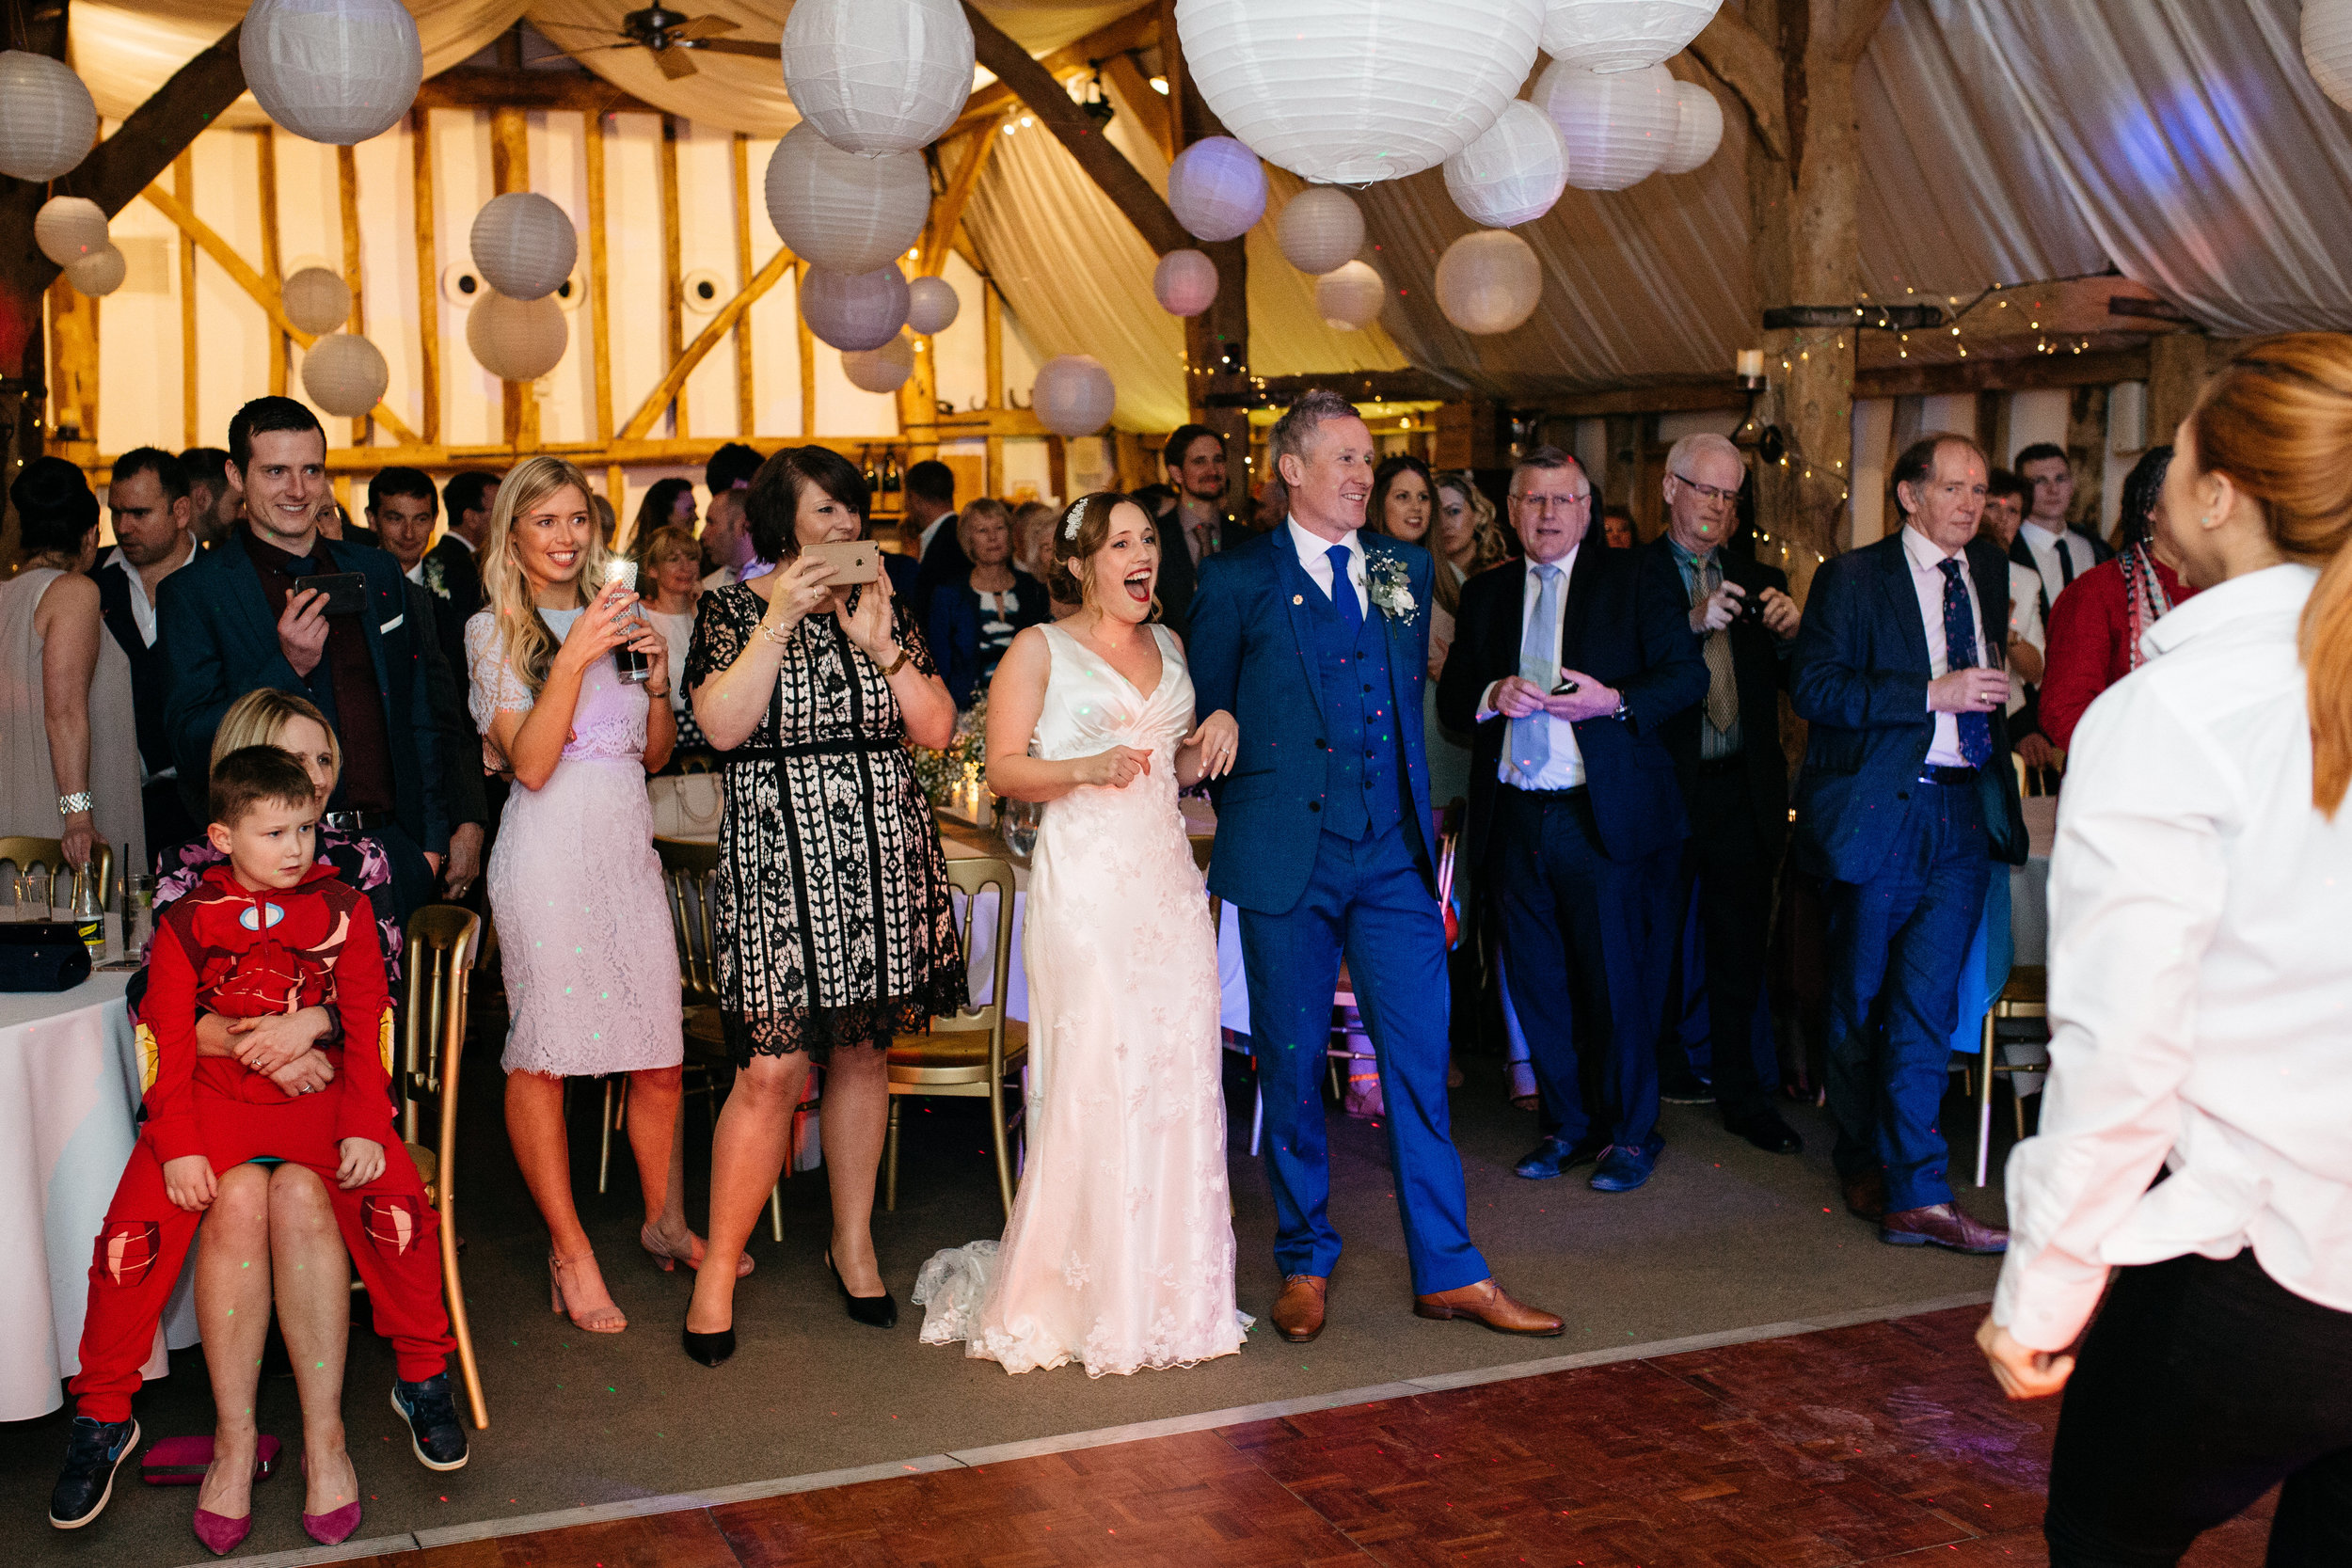 A surprise your guests will never forget! Photo courtesy of oliverphotography.co.uk/